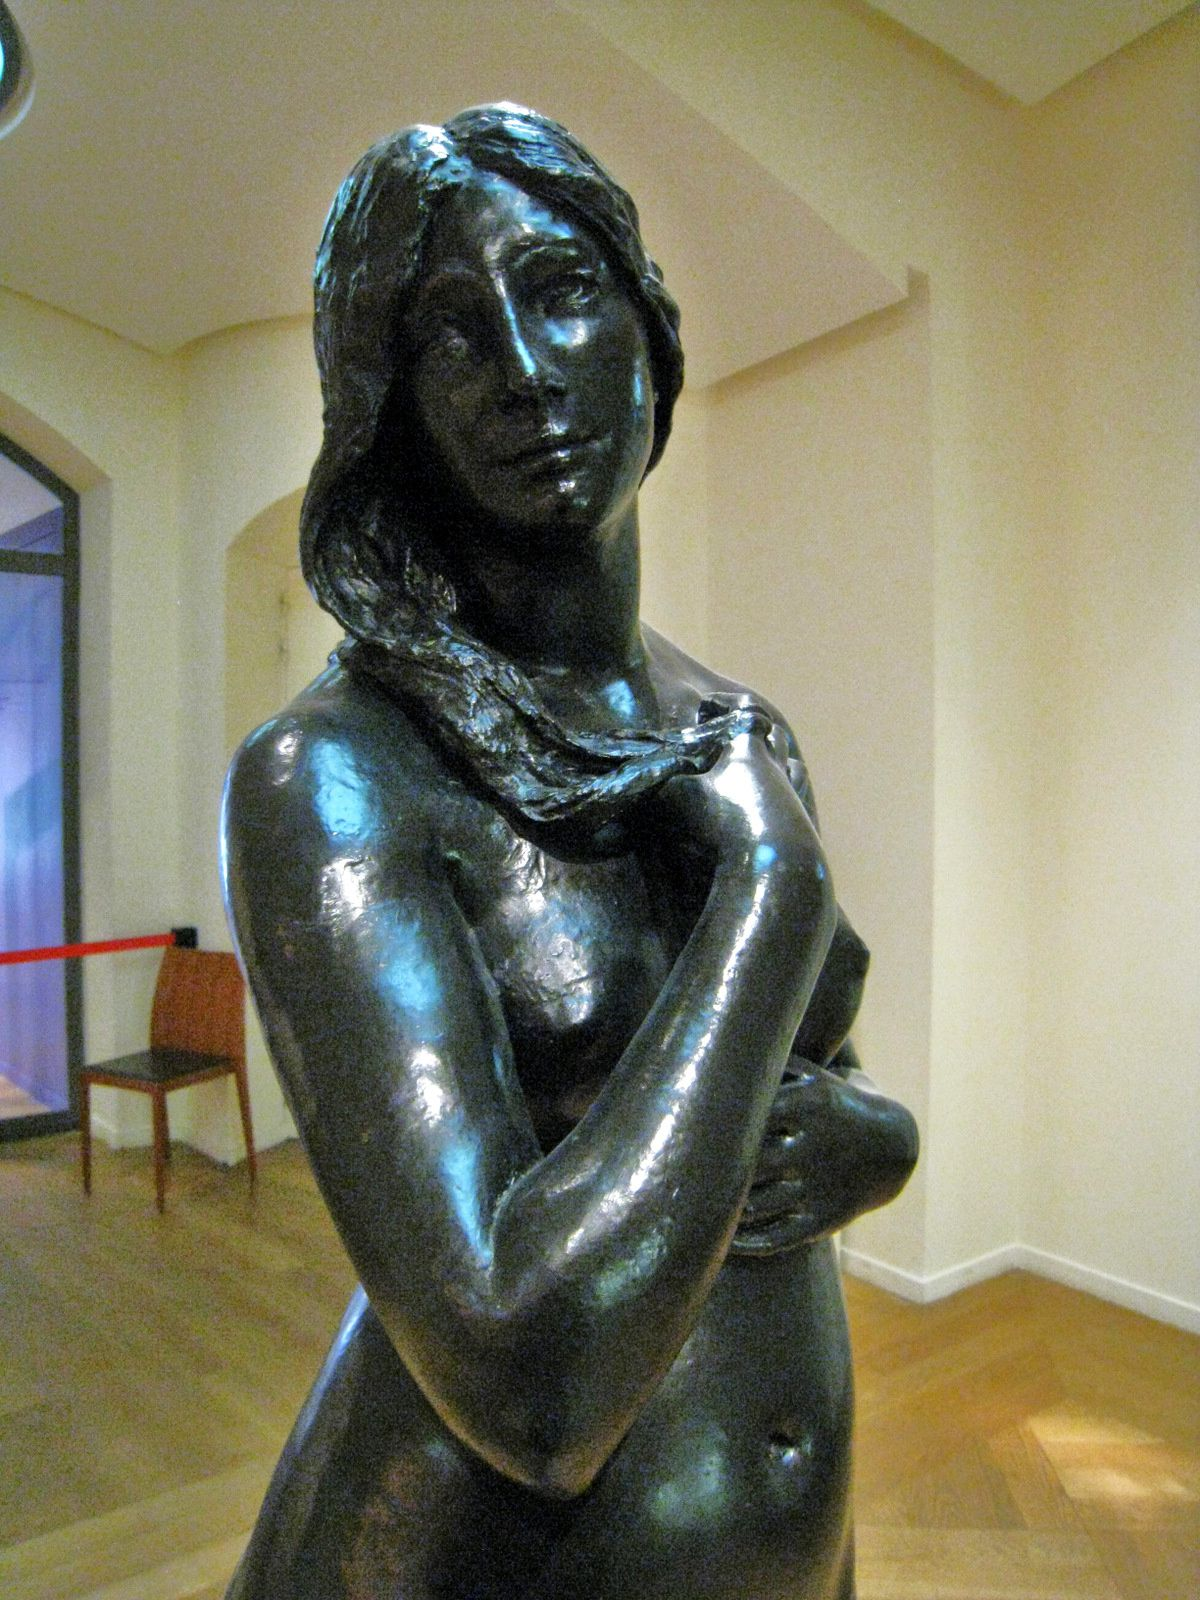 Eve naissante, sculpture de Paul Dubois